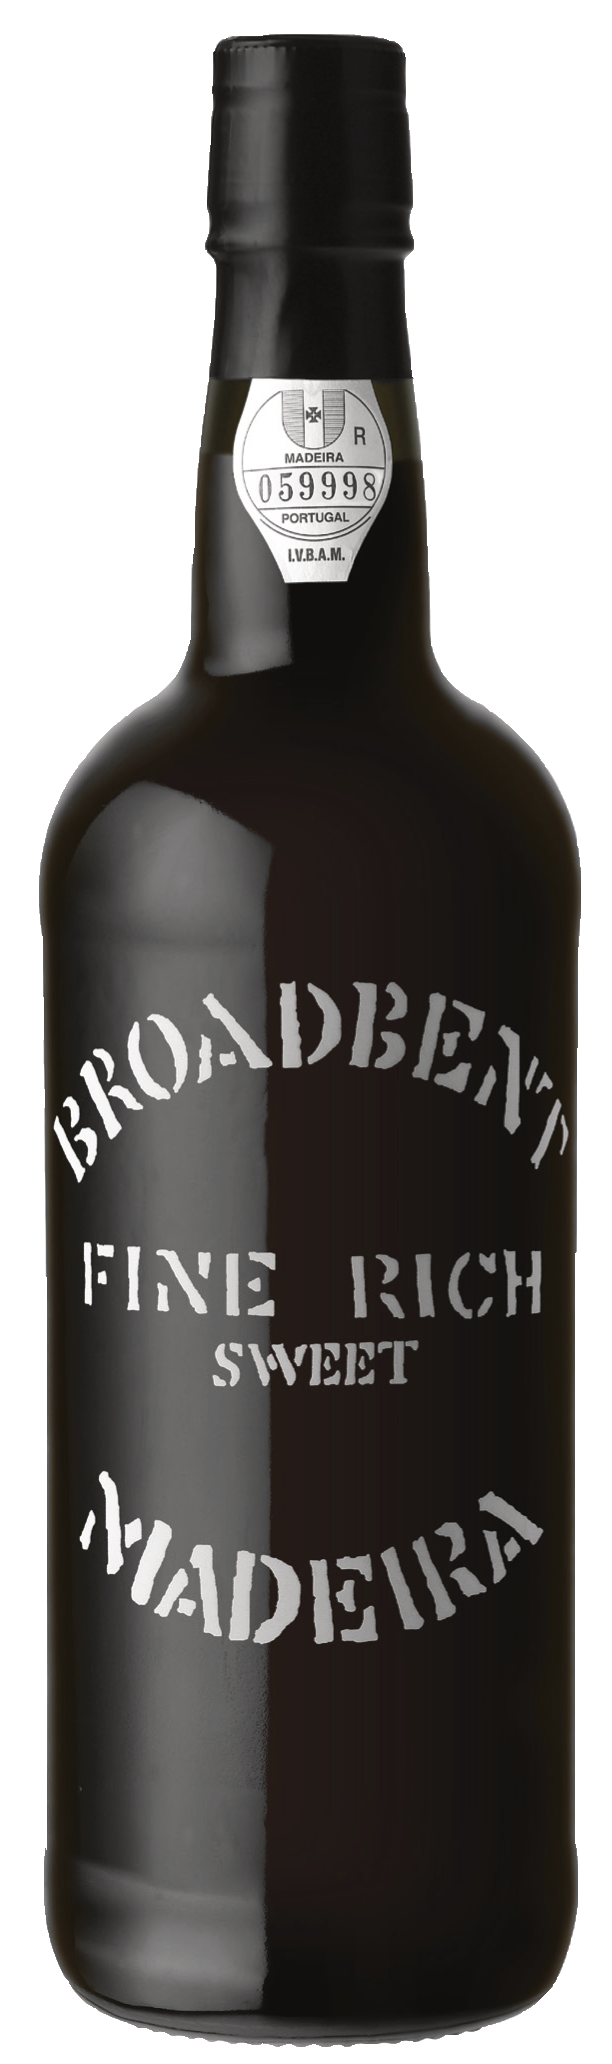 Broadbent_Madeira_Fine_Rich_Sweet